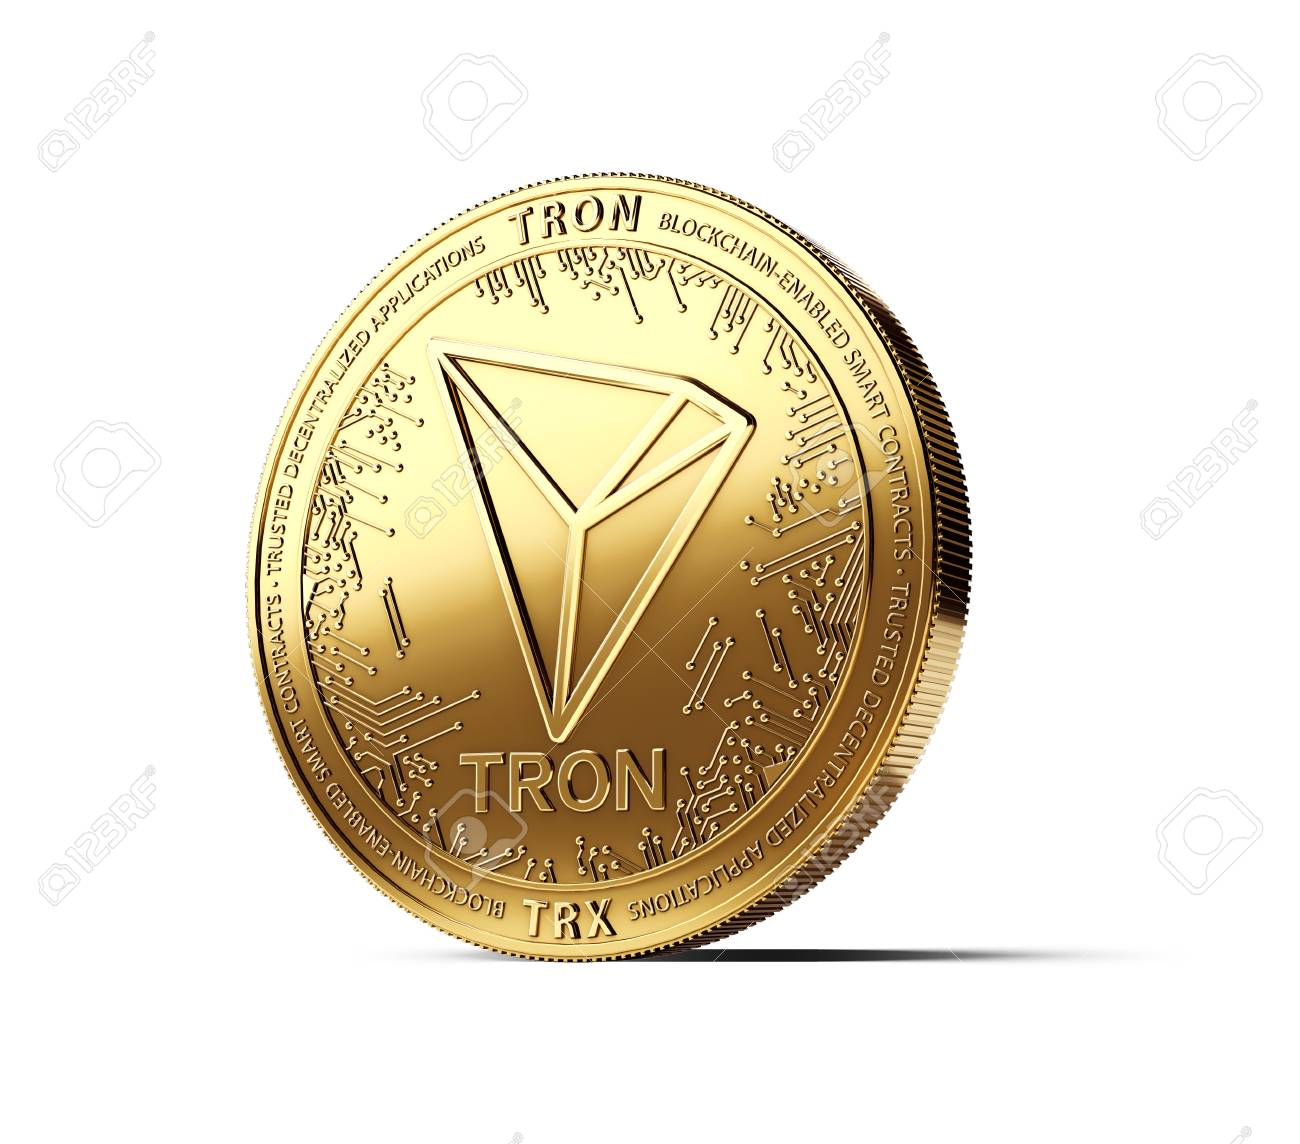 tron coin cryptocurrency